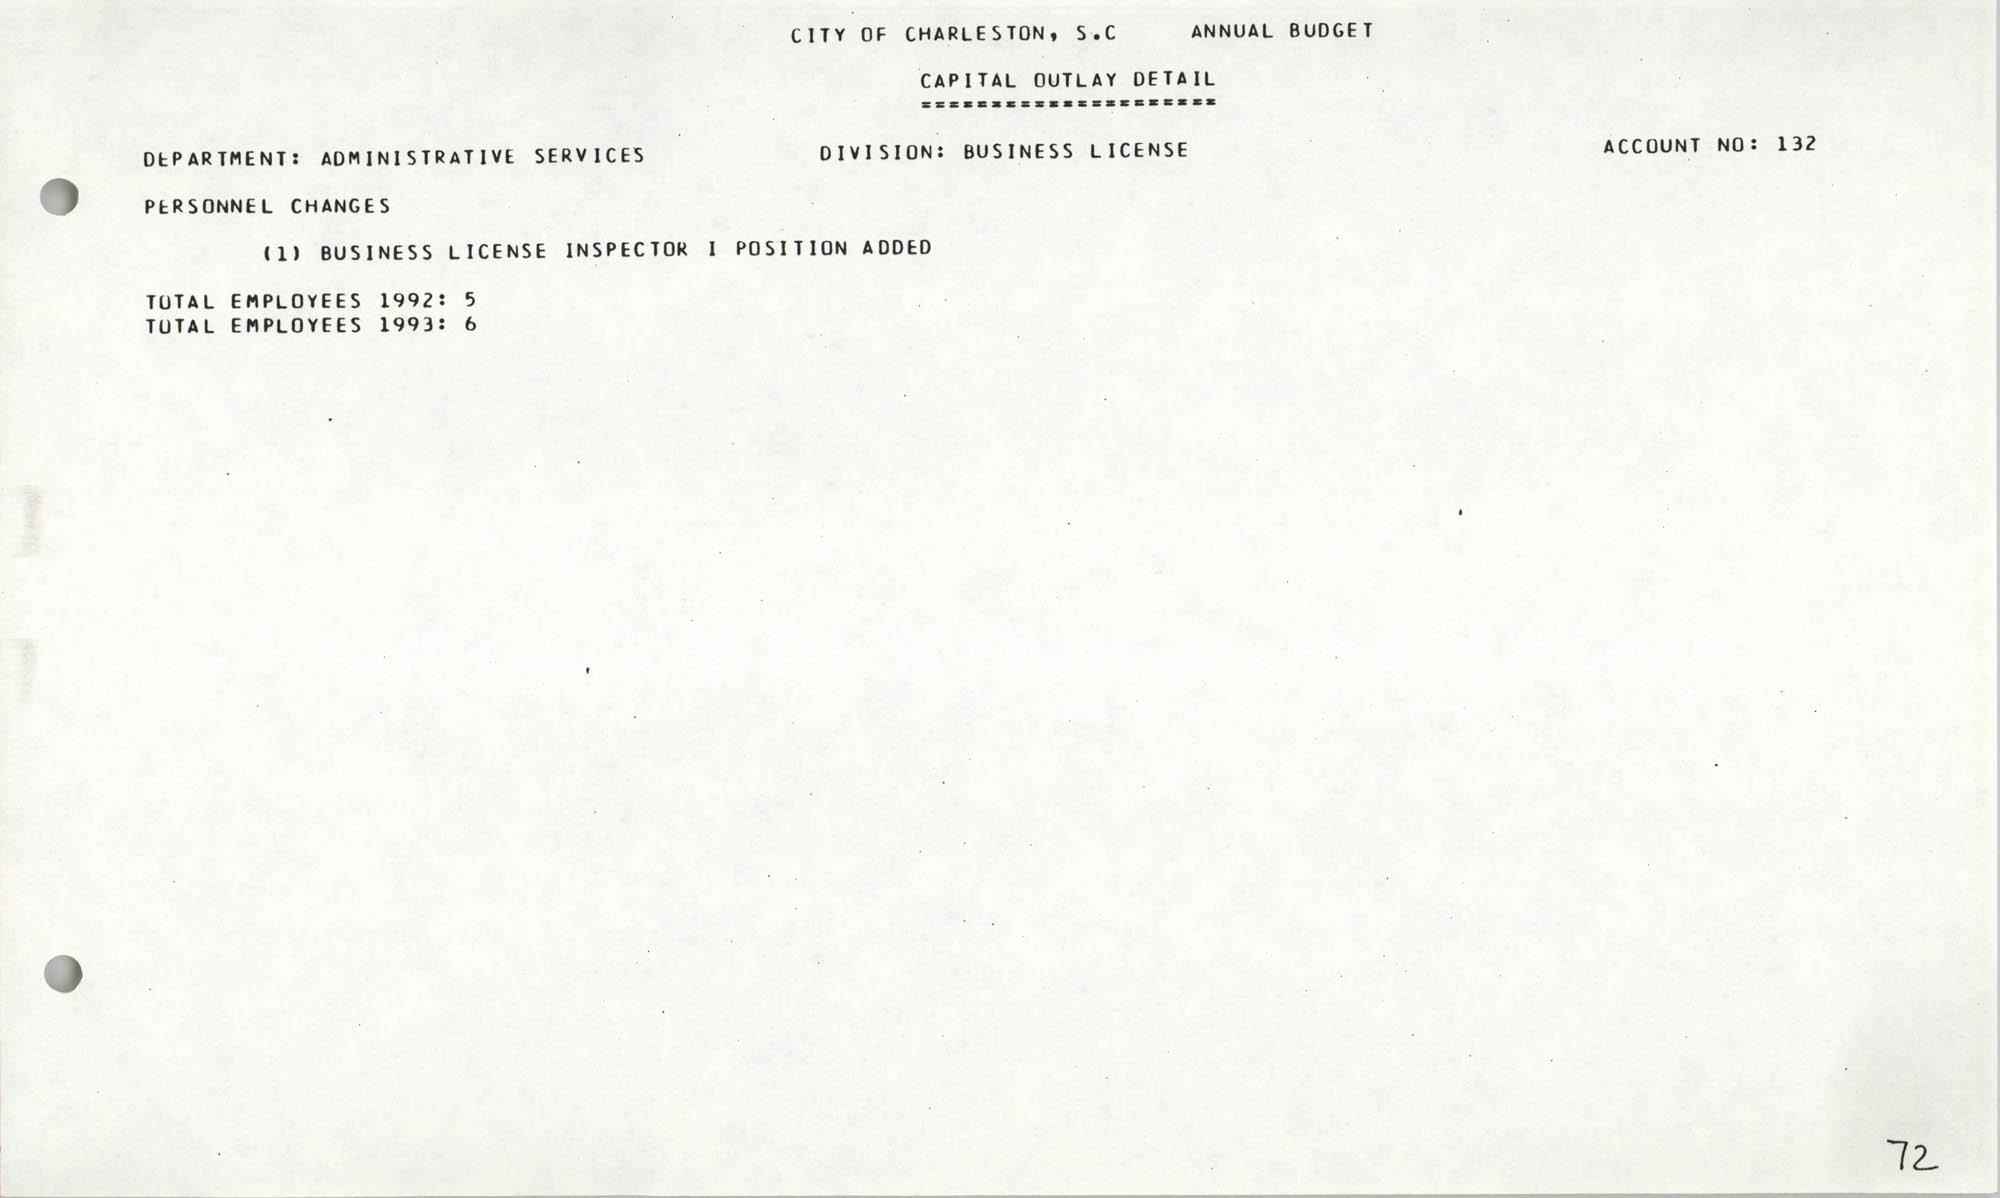 The City Council of Charleston, South Carolina, 1993 Budget, Page 72